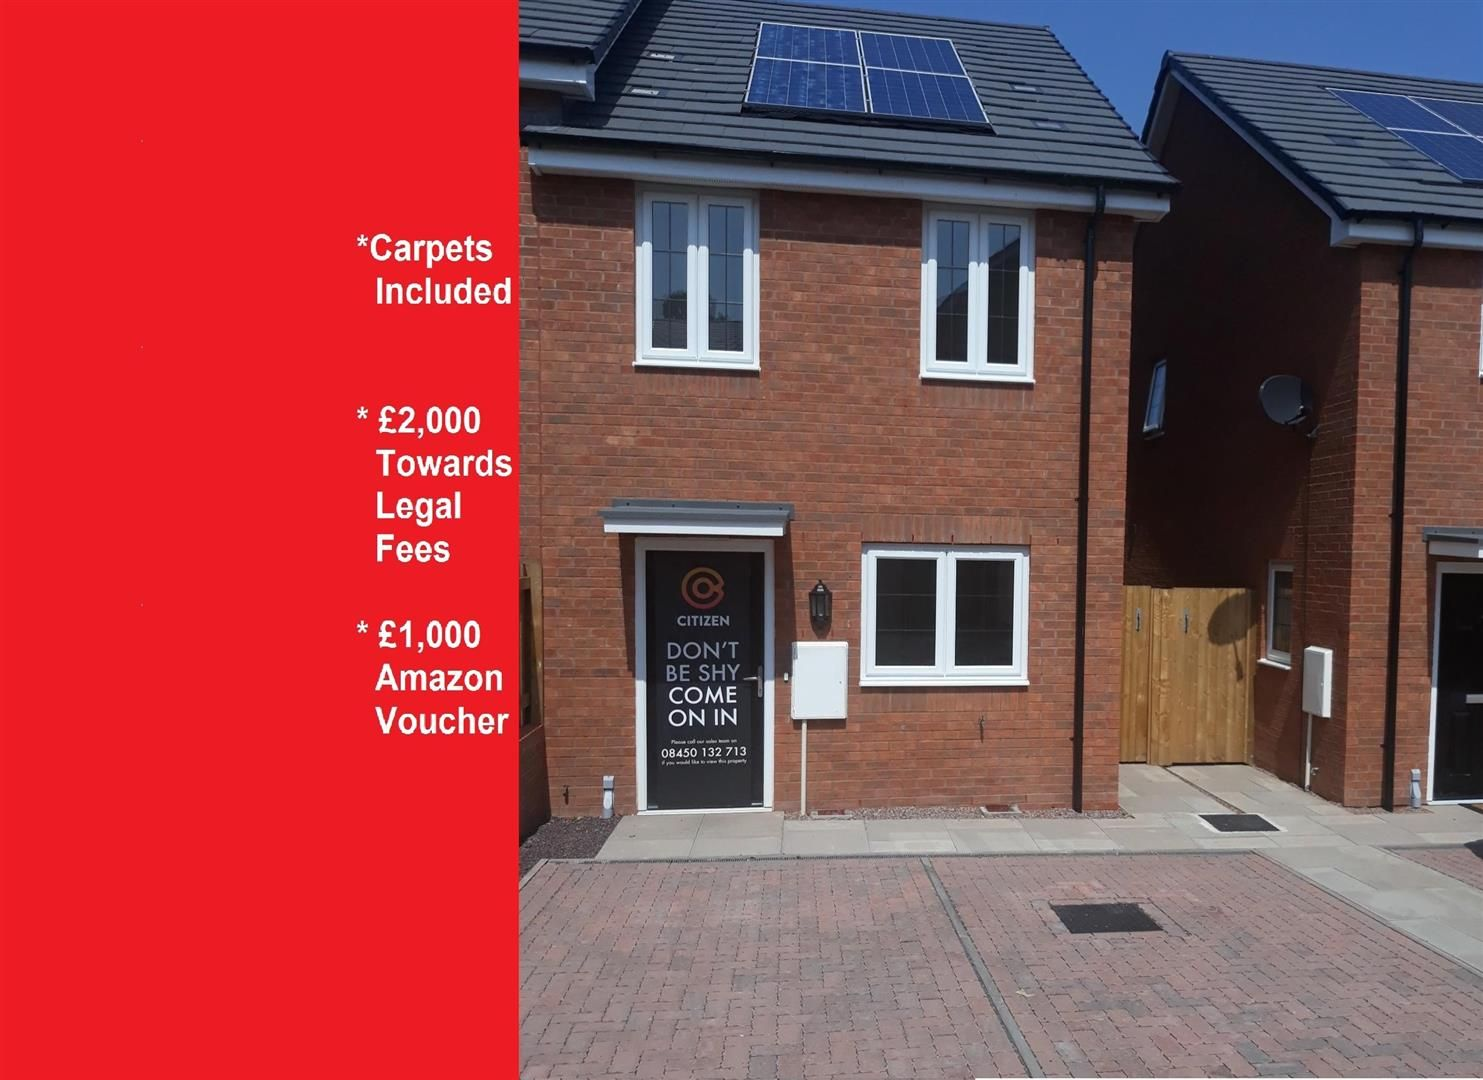 Property photo 1 of 7. External Front Pic With Offer.Jpg